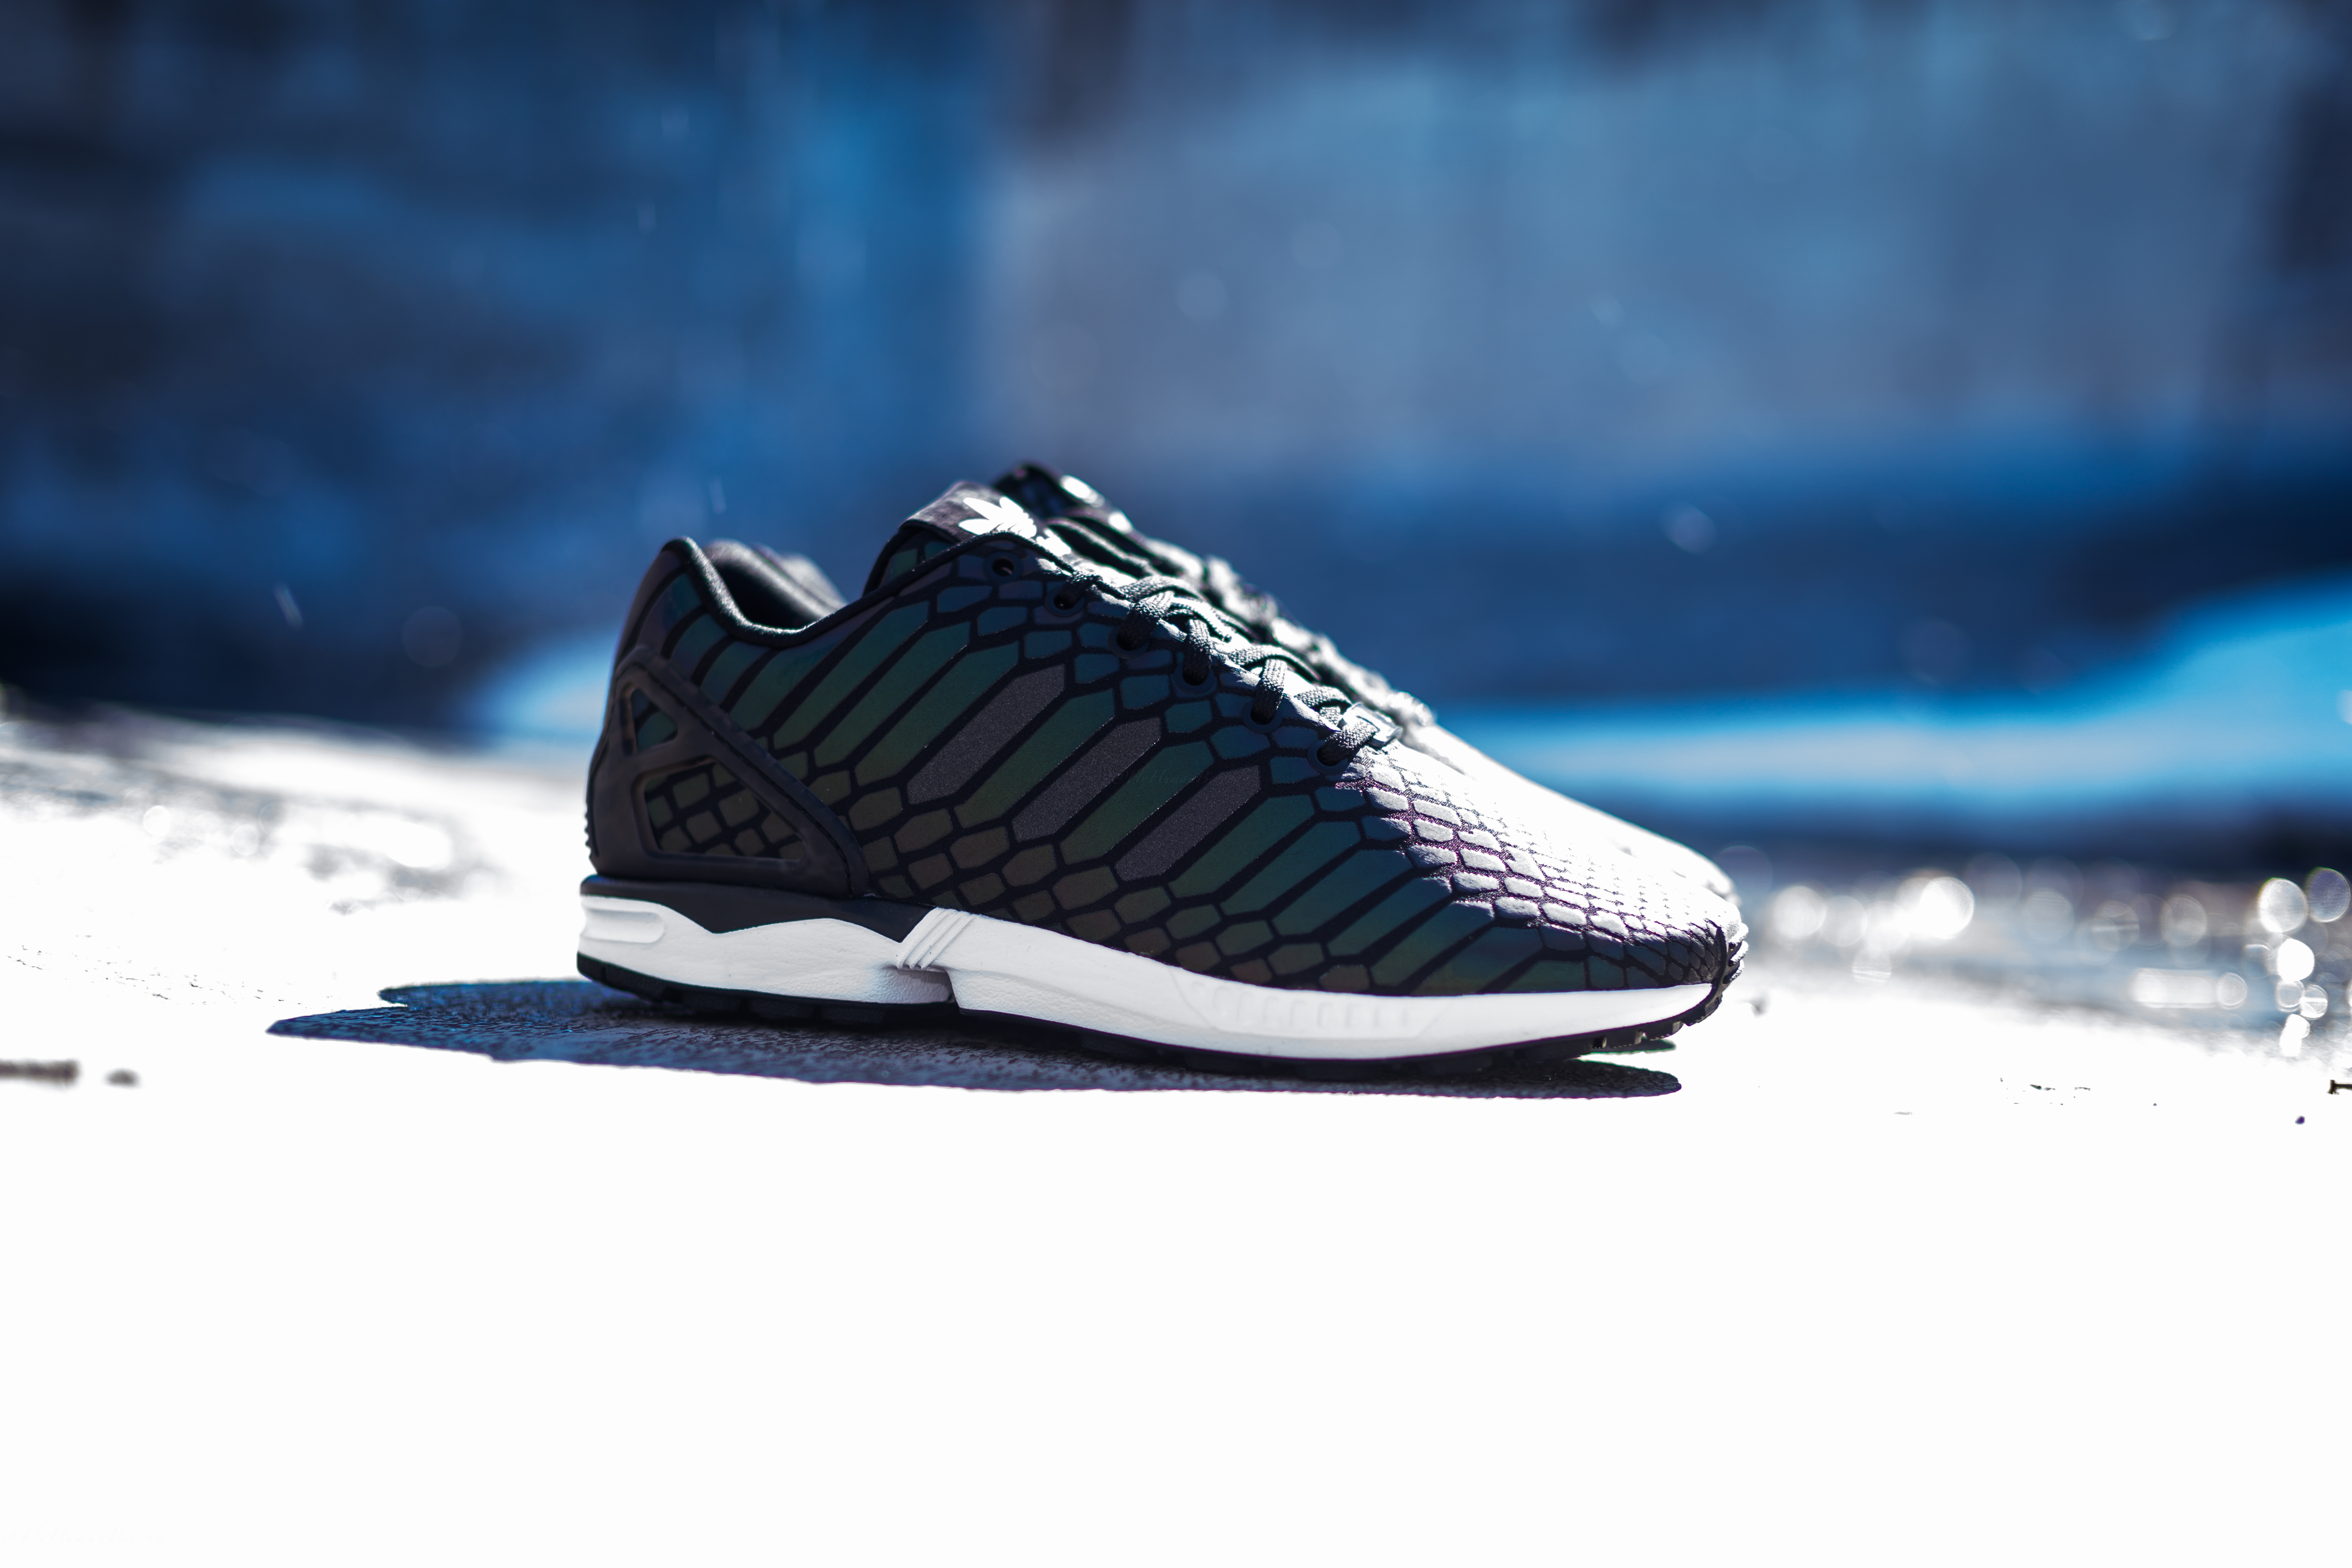 adidas originals zx flux xeno packer shoes packer shoes. Black Bedroom Furniture Sets. Home Design Ideas